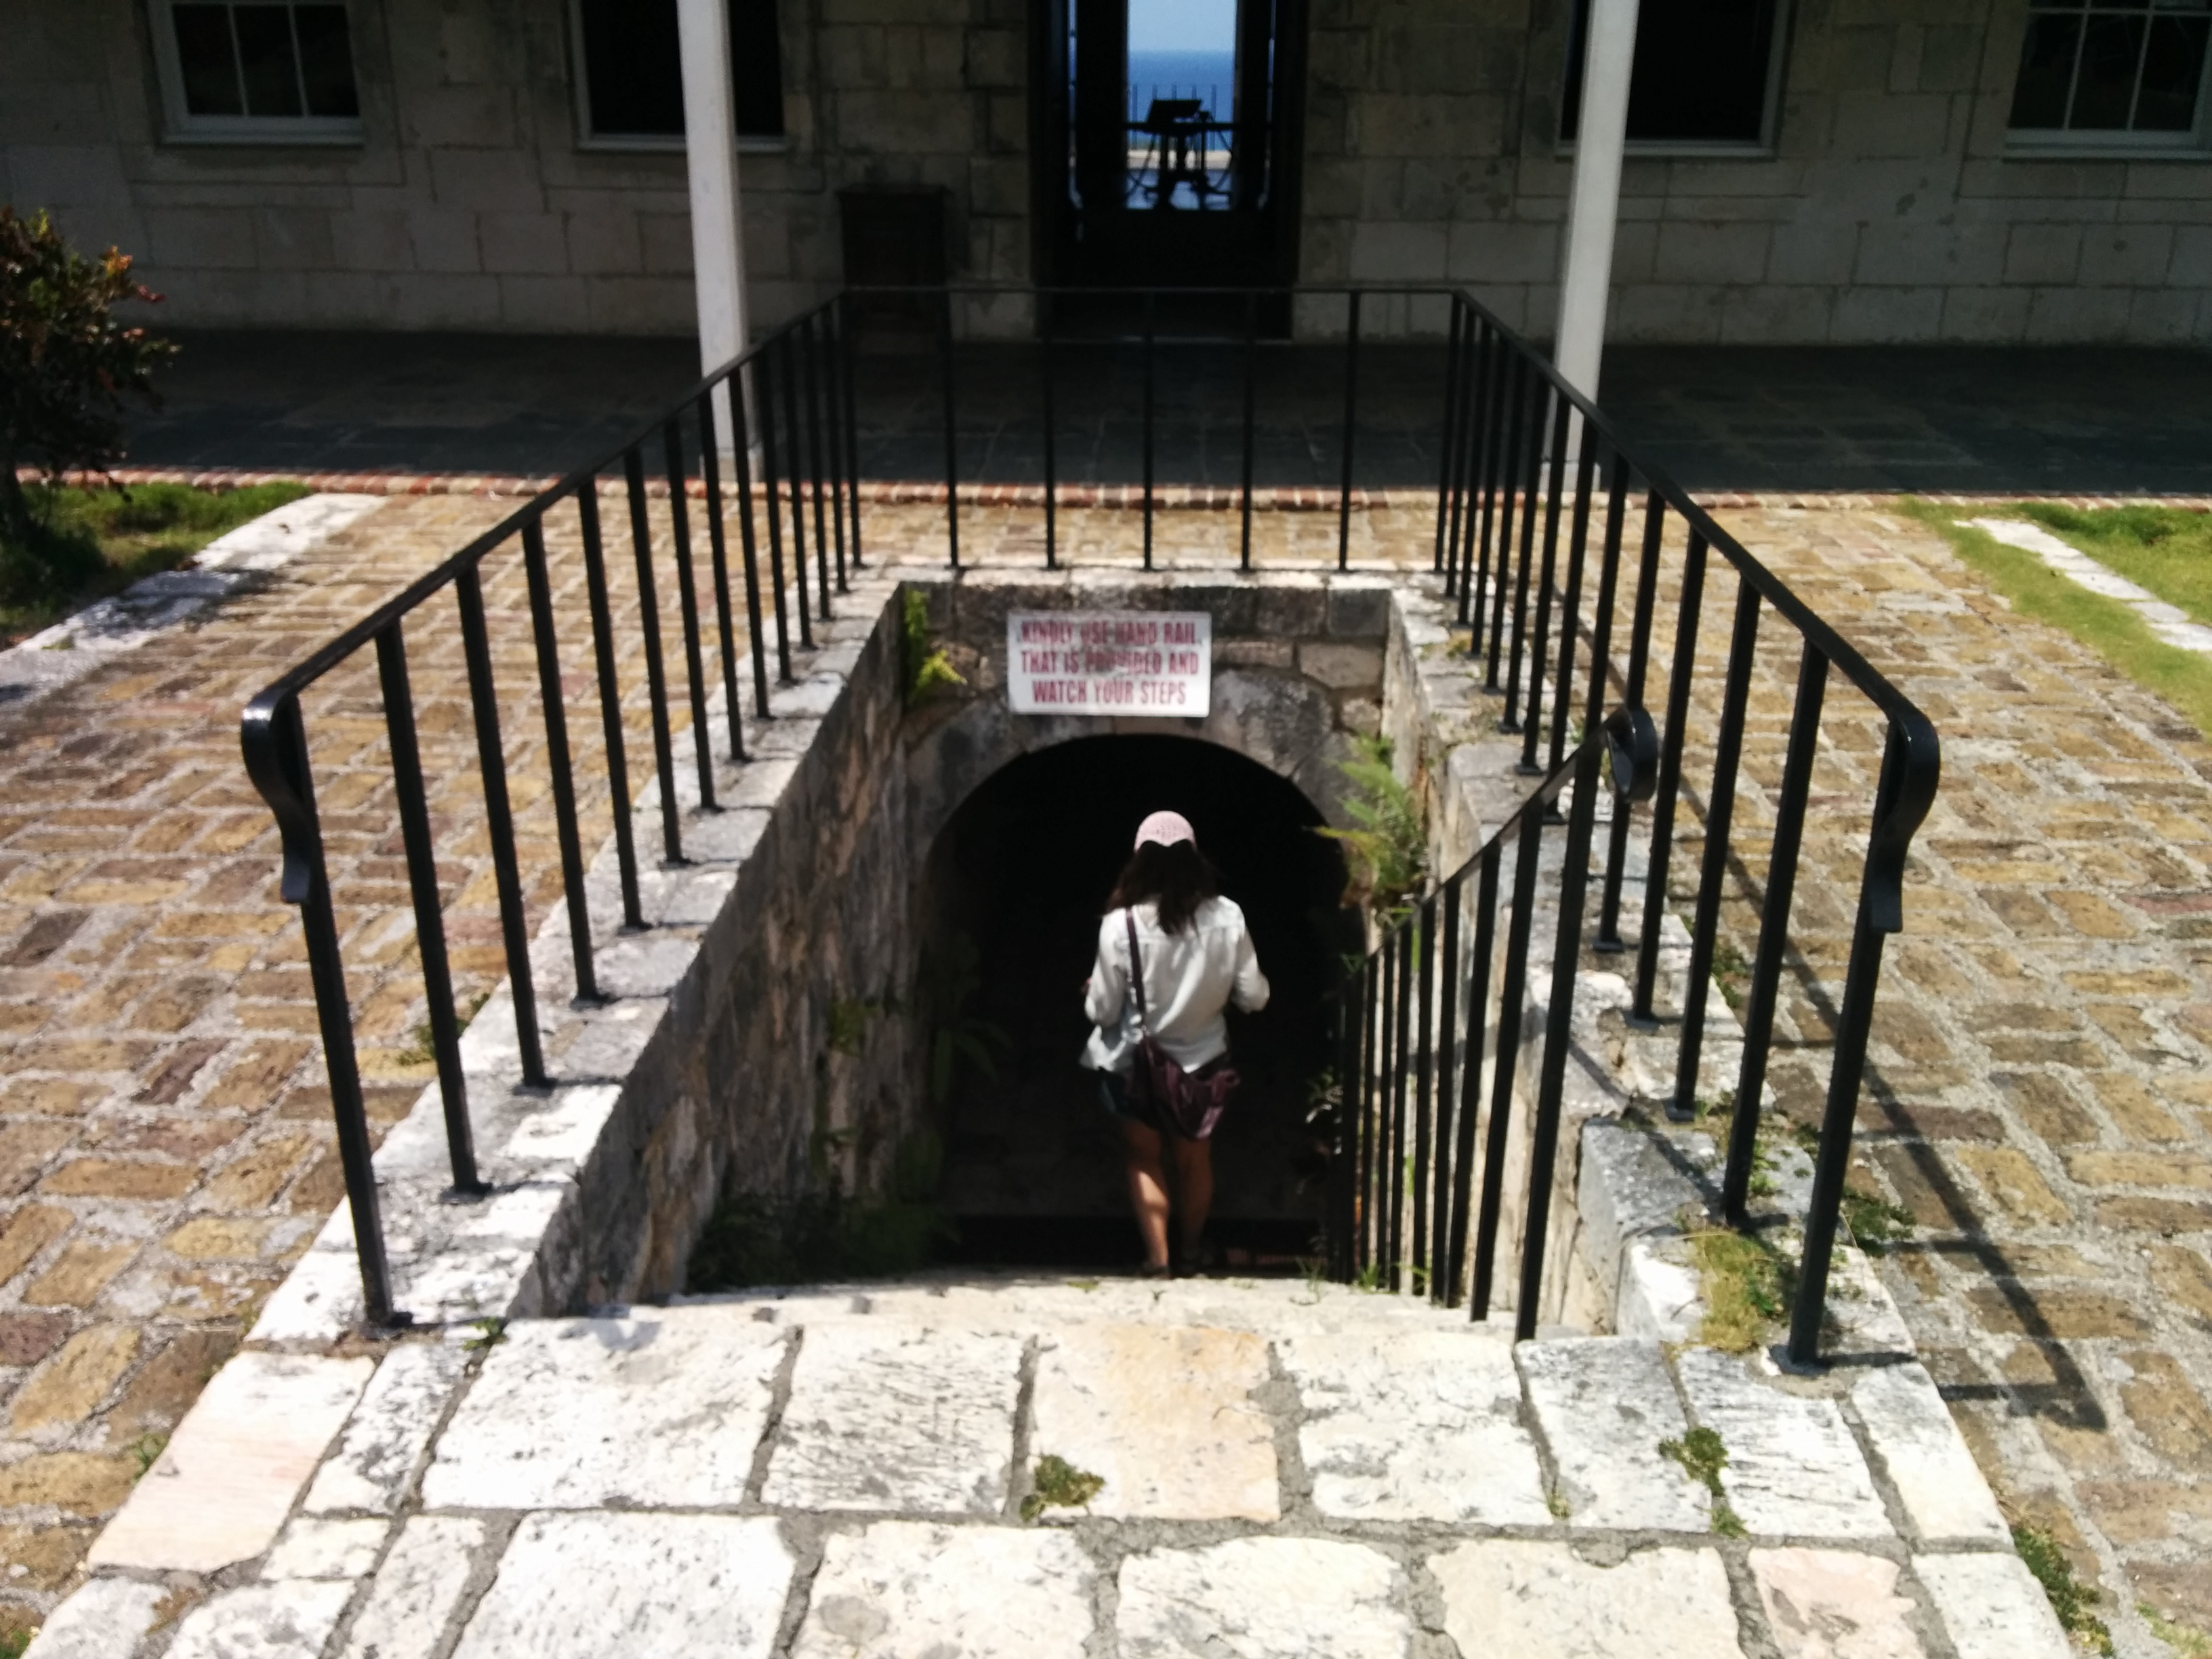 The dungeon steps